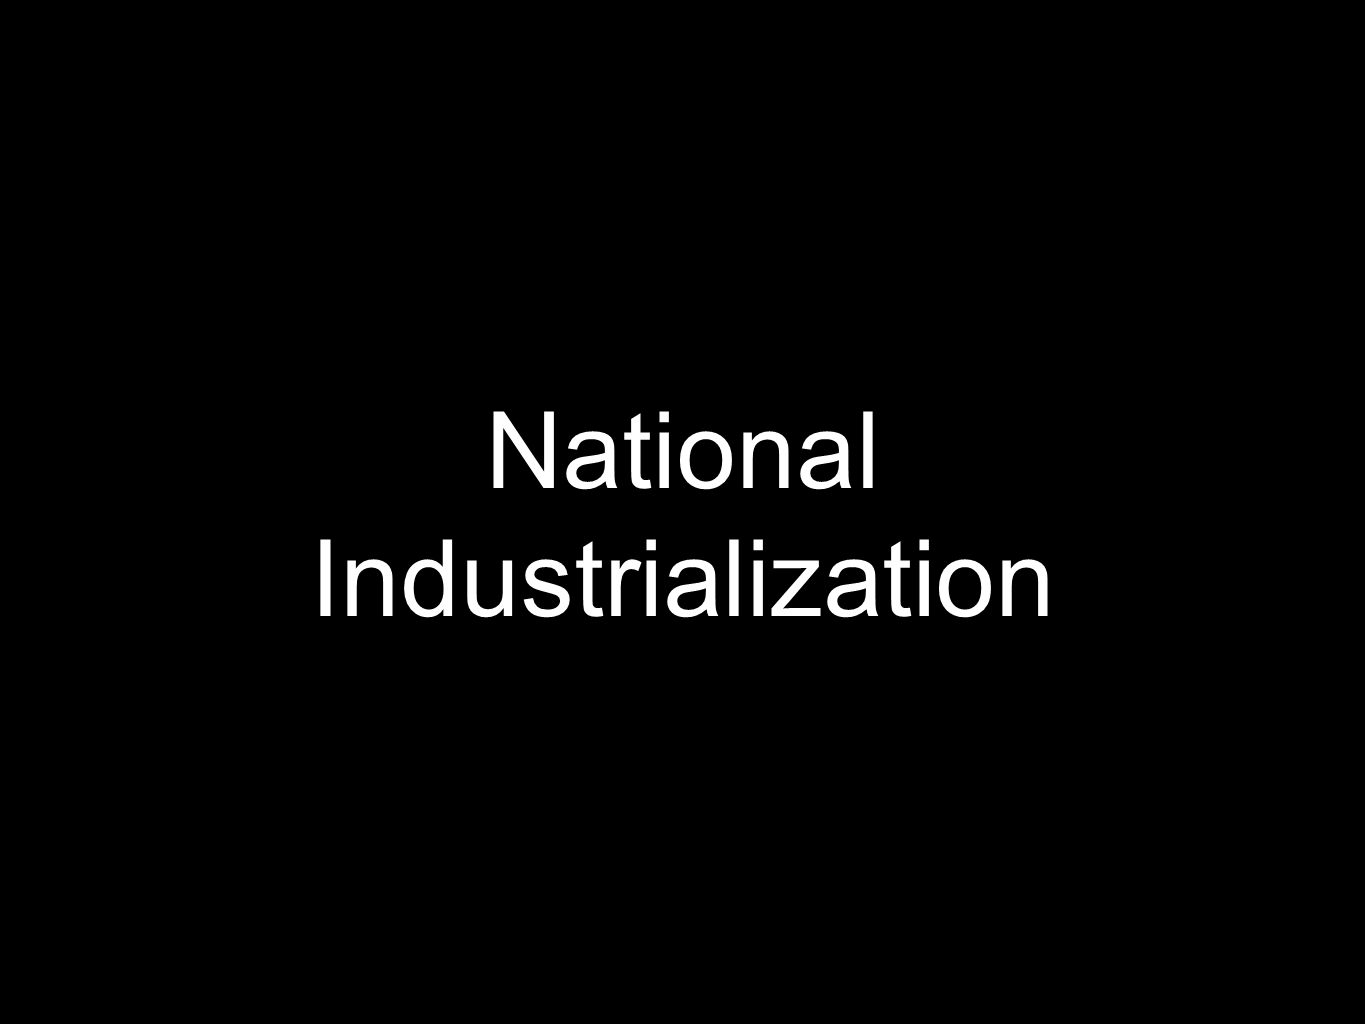 National Industrialization